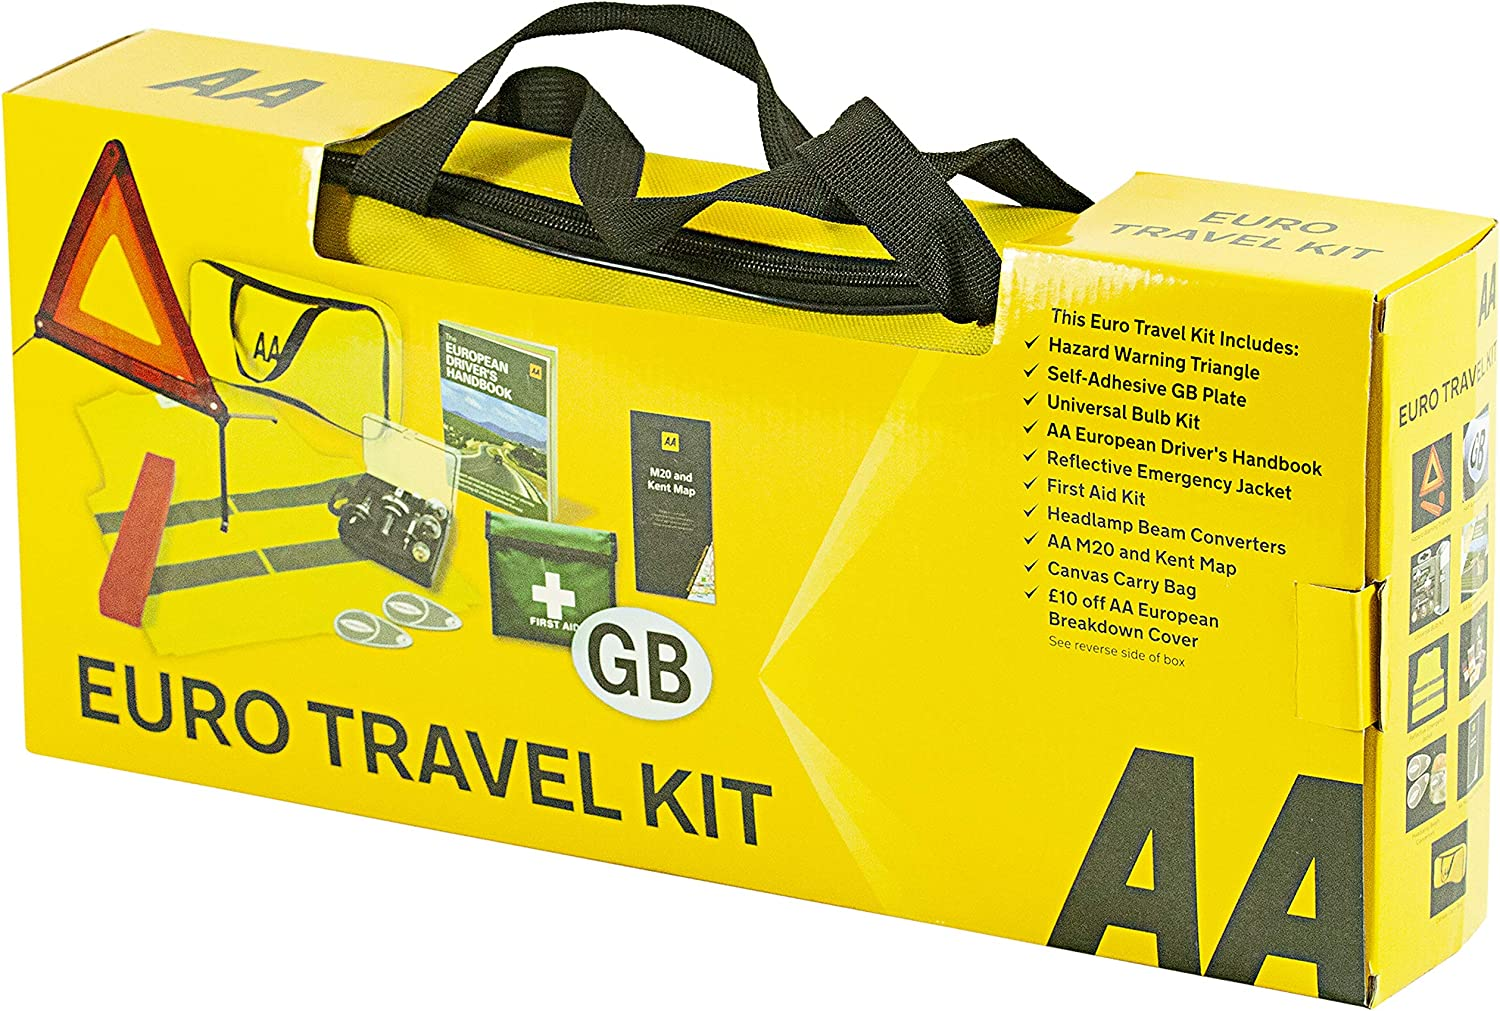 bundle Compact Universal Bulb Kit and High Visibility Vest Family Pack AA France Travel Kit with Breathalysers